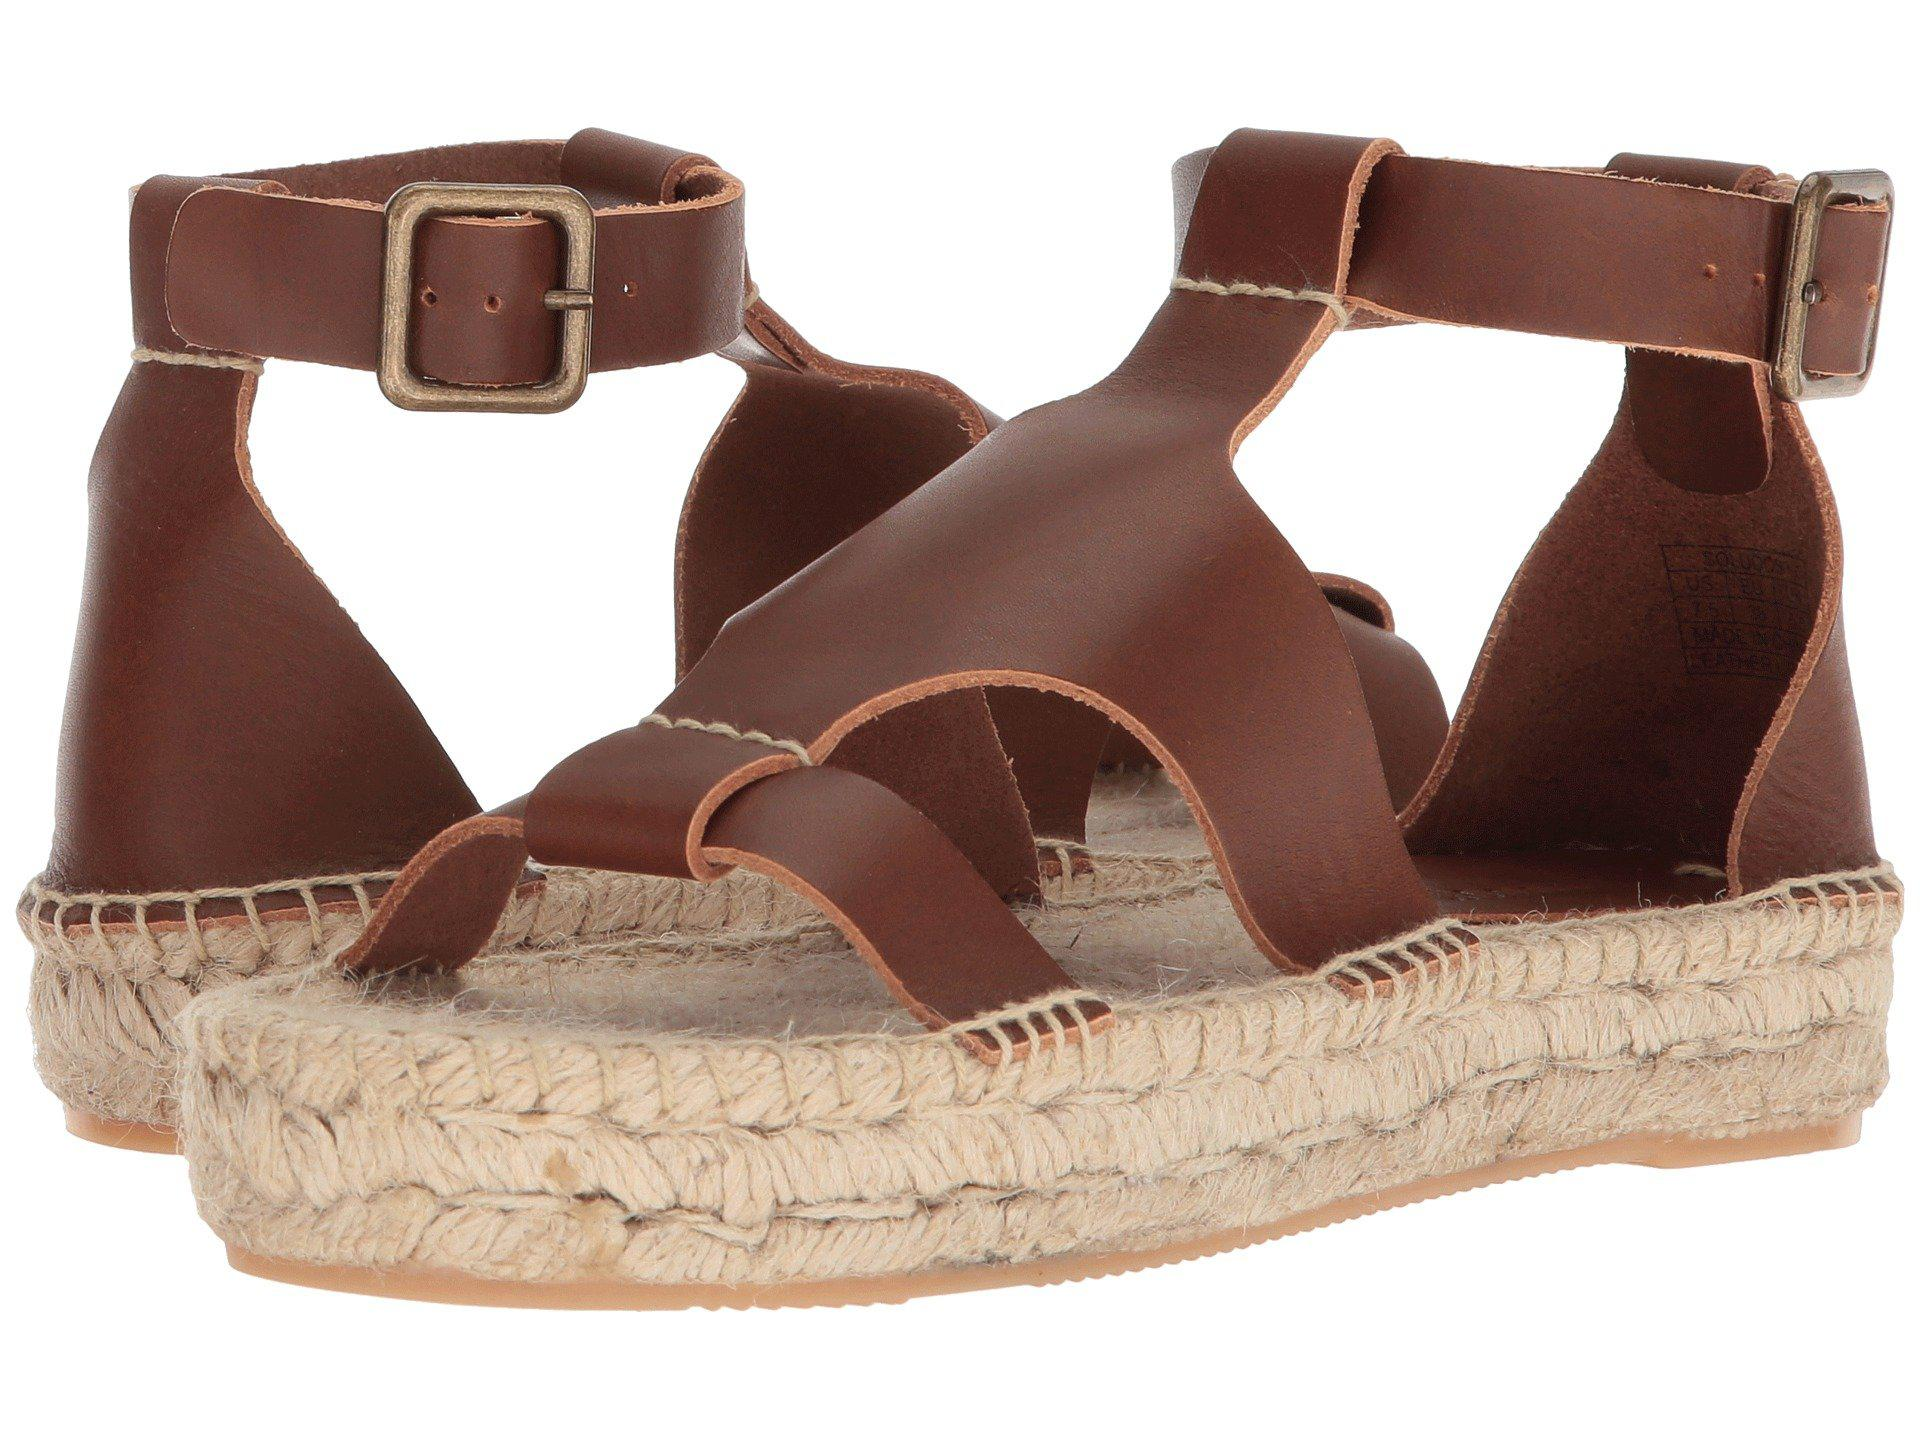 b72333a33ee Lyst - Soludos Banded Shield Sandal in Brown - Save 21%